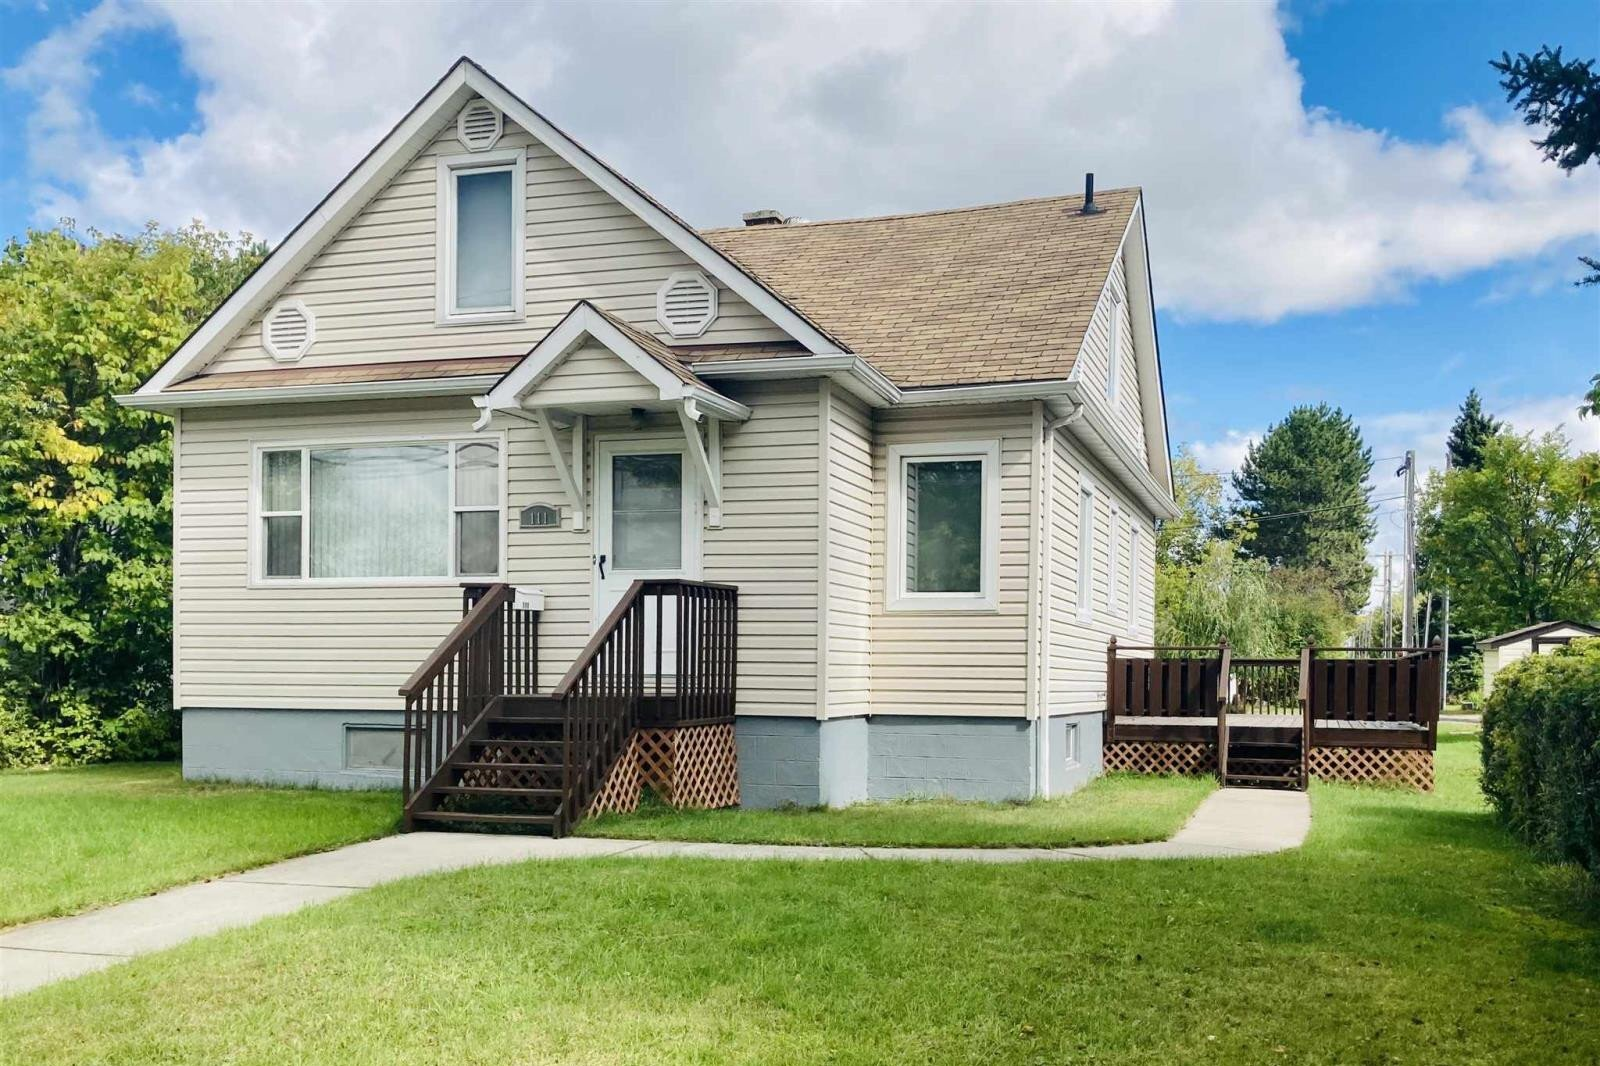 House for sale at 111 Van Horne Ave Dryden Ontario - MLS: TB202232